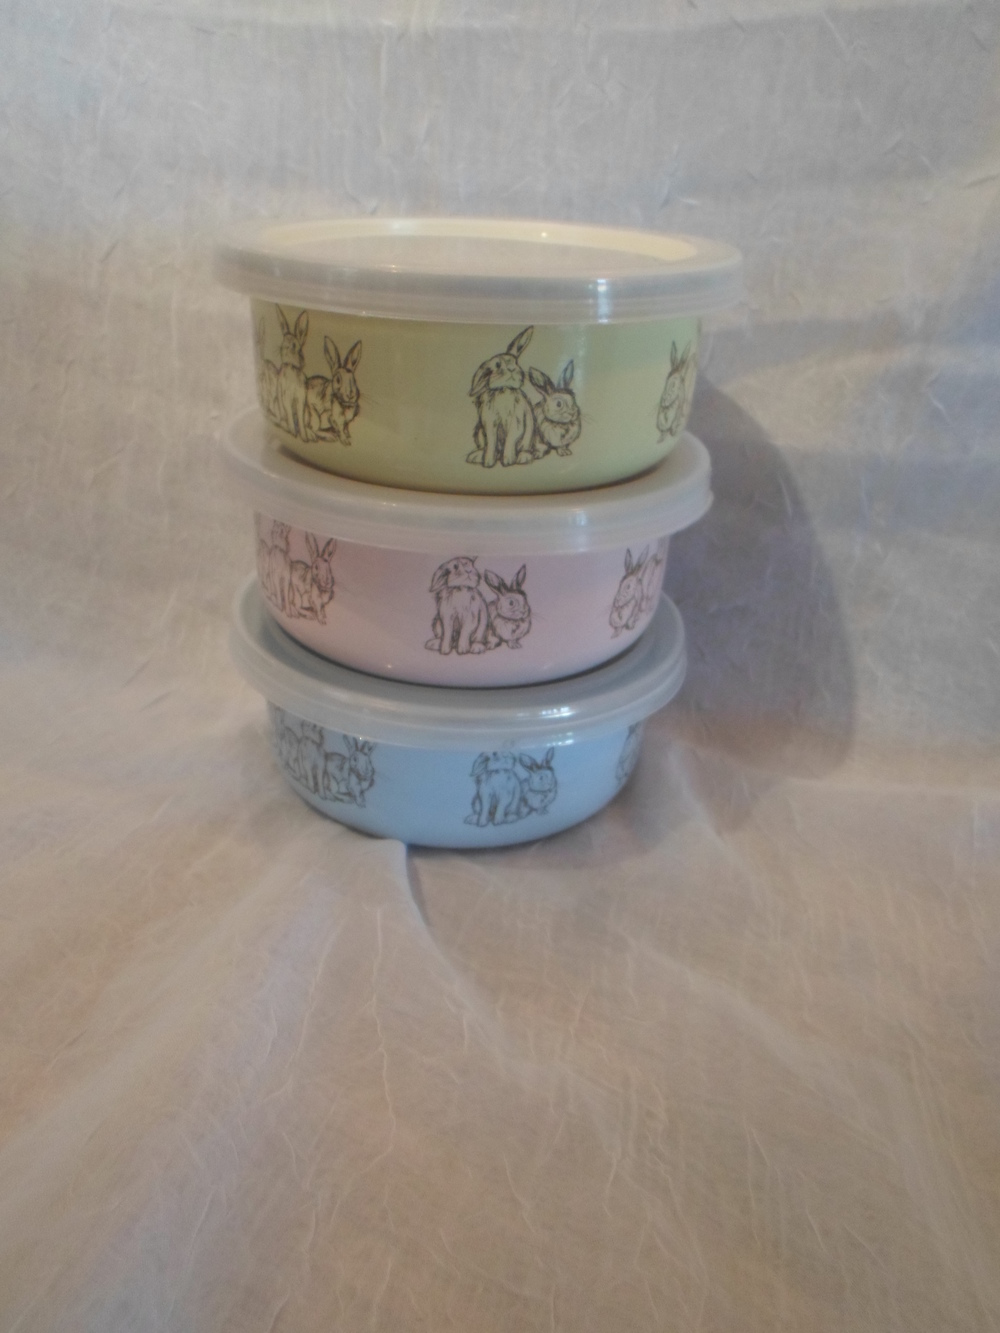 Enamelware Bunny Bowl w/ Lid in yellow, pink and blue $9.95 each Wants 3 PURCHASED